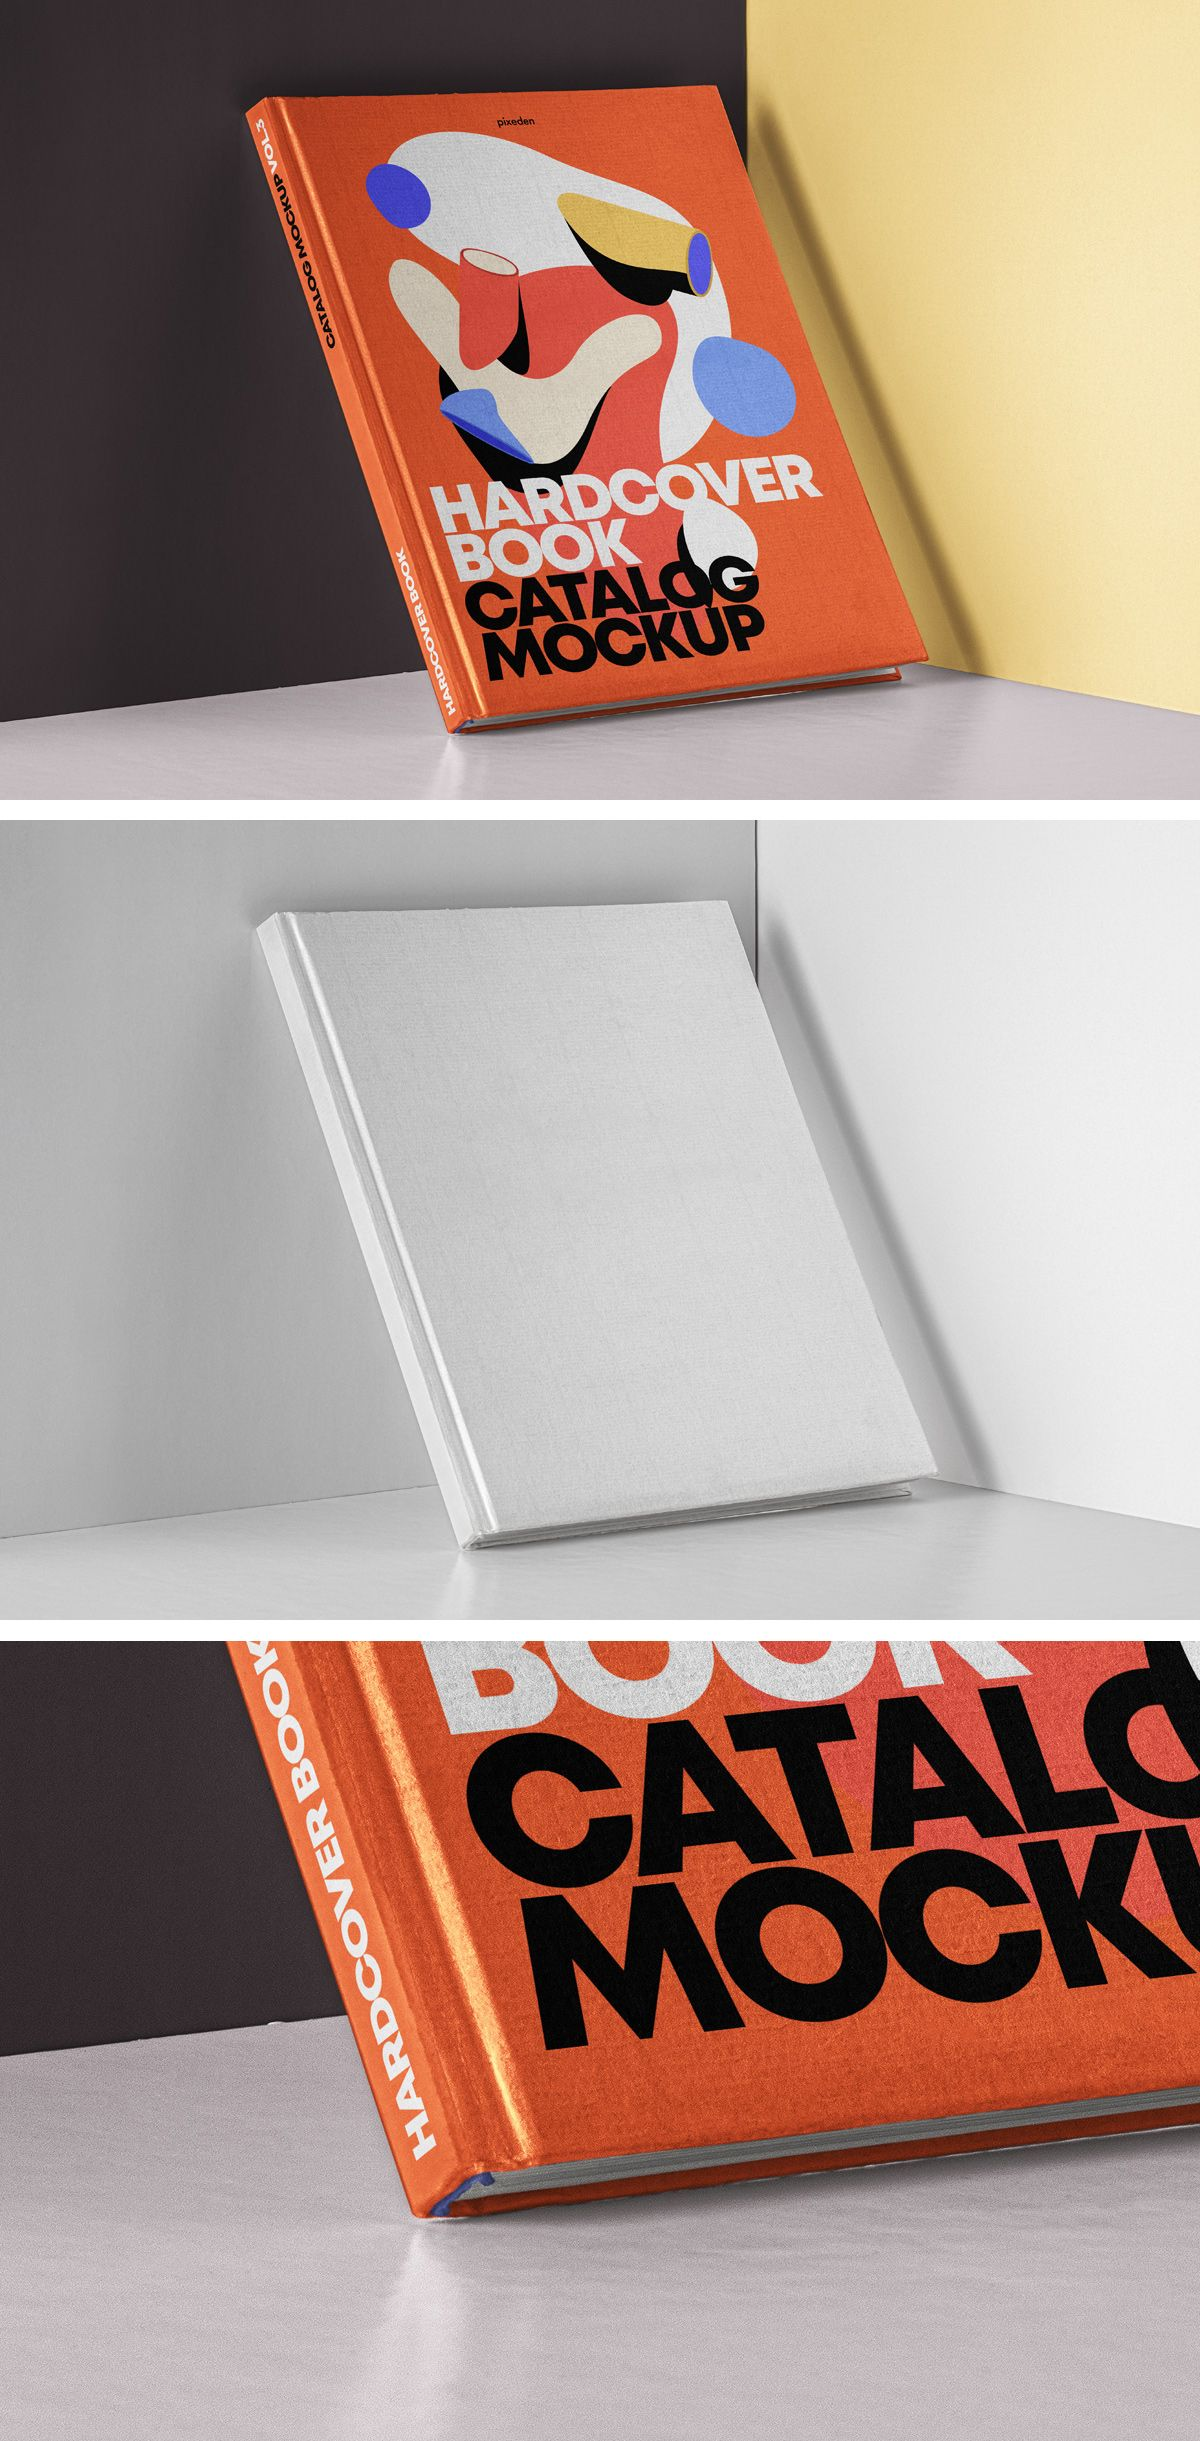 Free Hardcover Book Cover Mockup Book cover mockup, Book